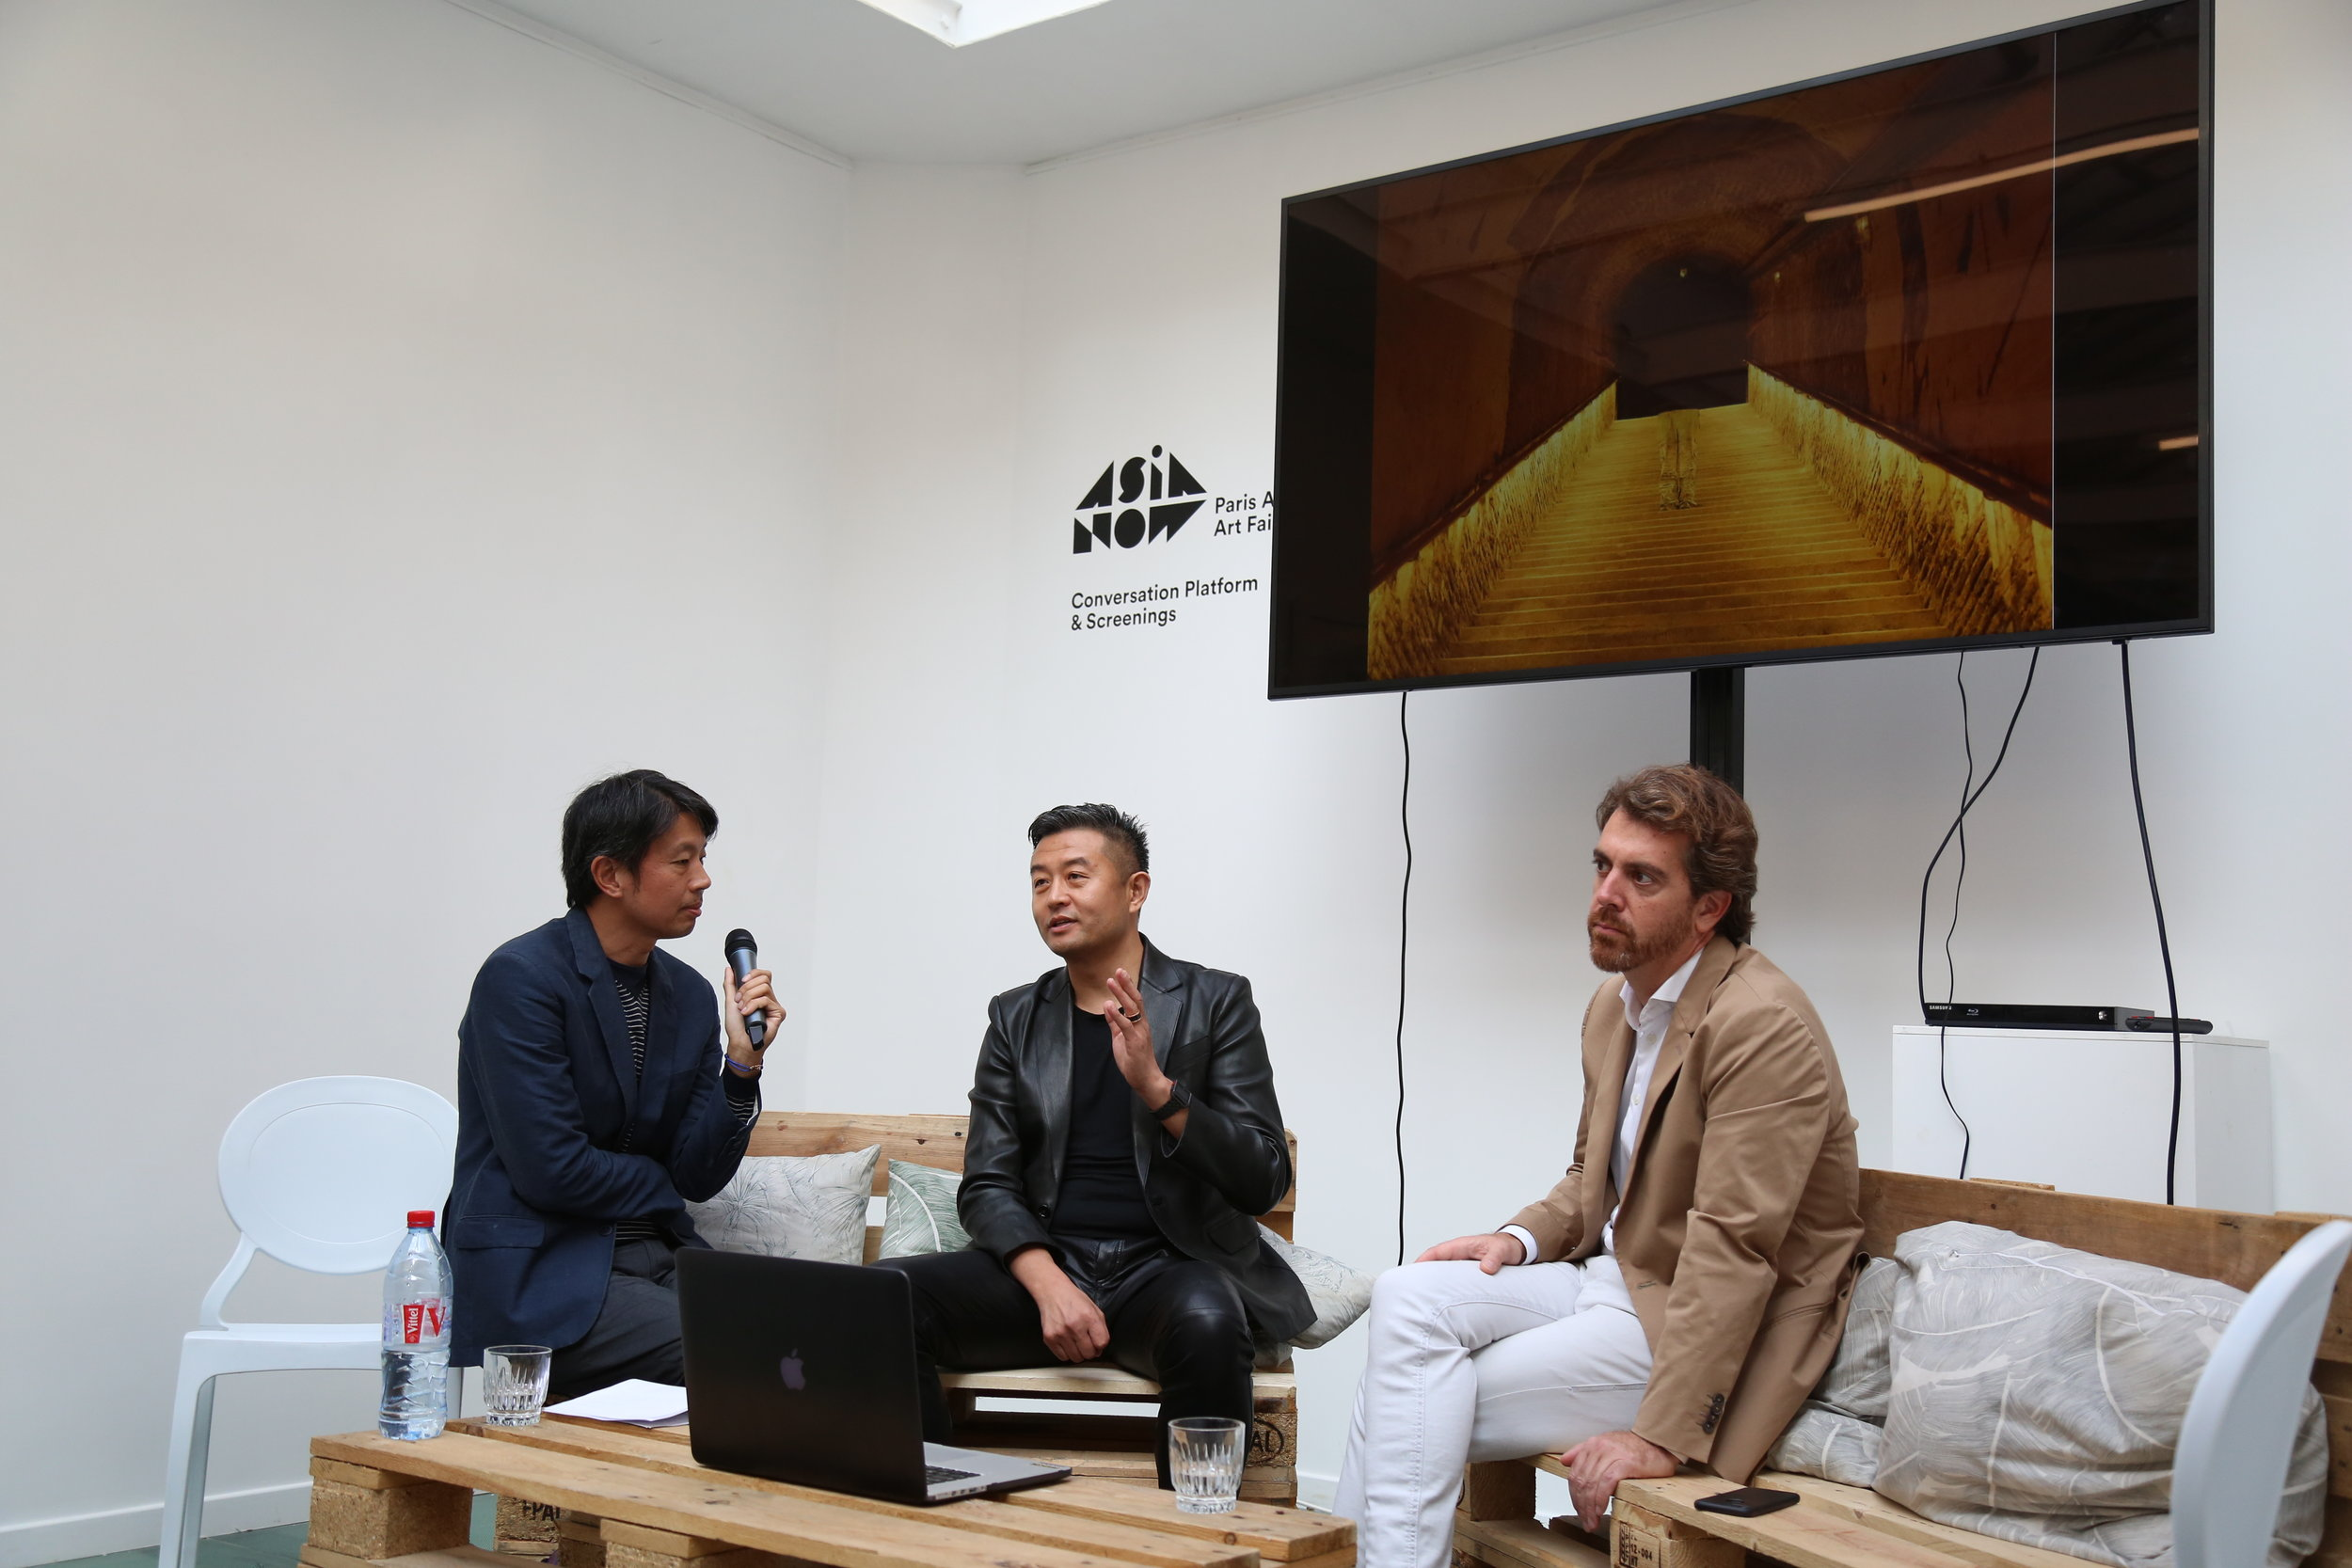 Liu Bolin, artist, Romain Degoul, founder of the Galerie Paris-Beijing and Liyu Yeo, independent curator